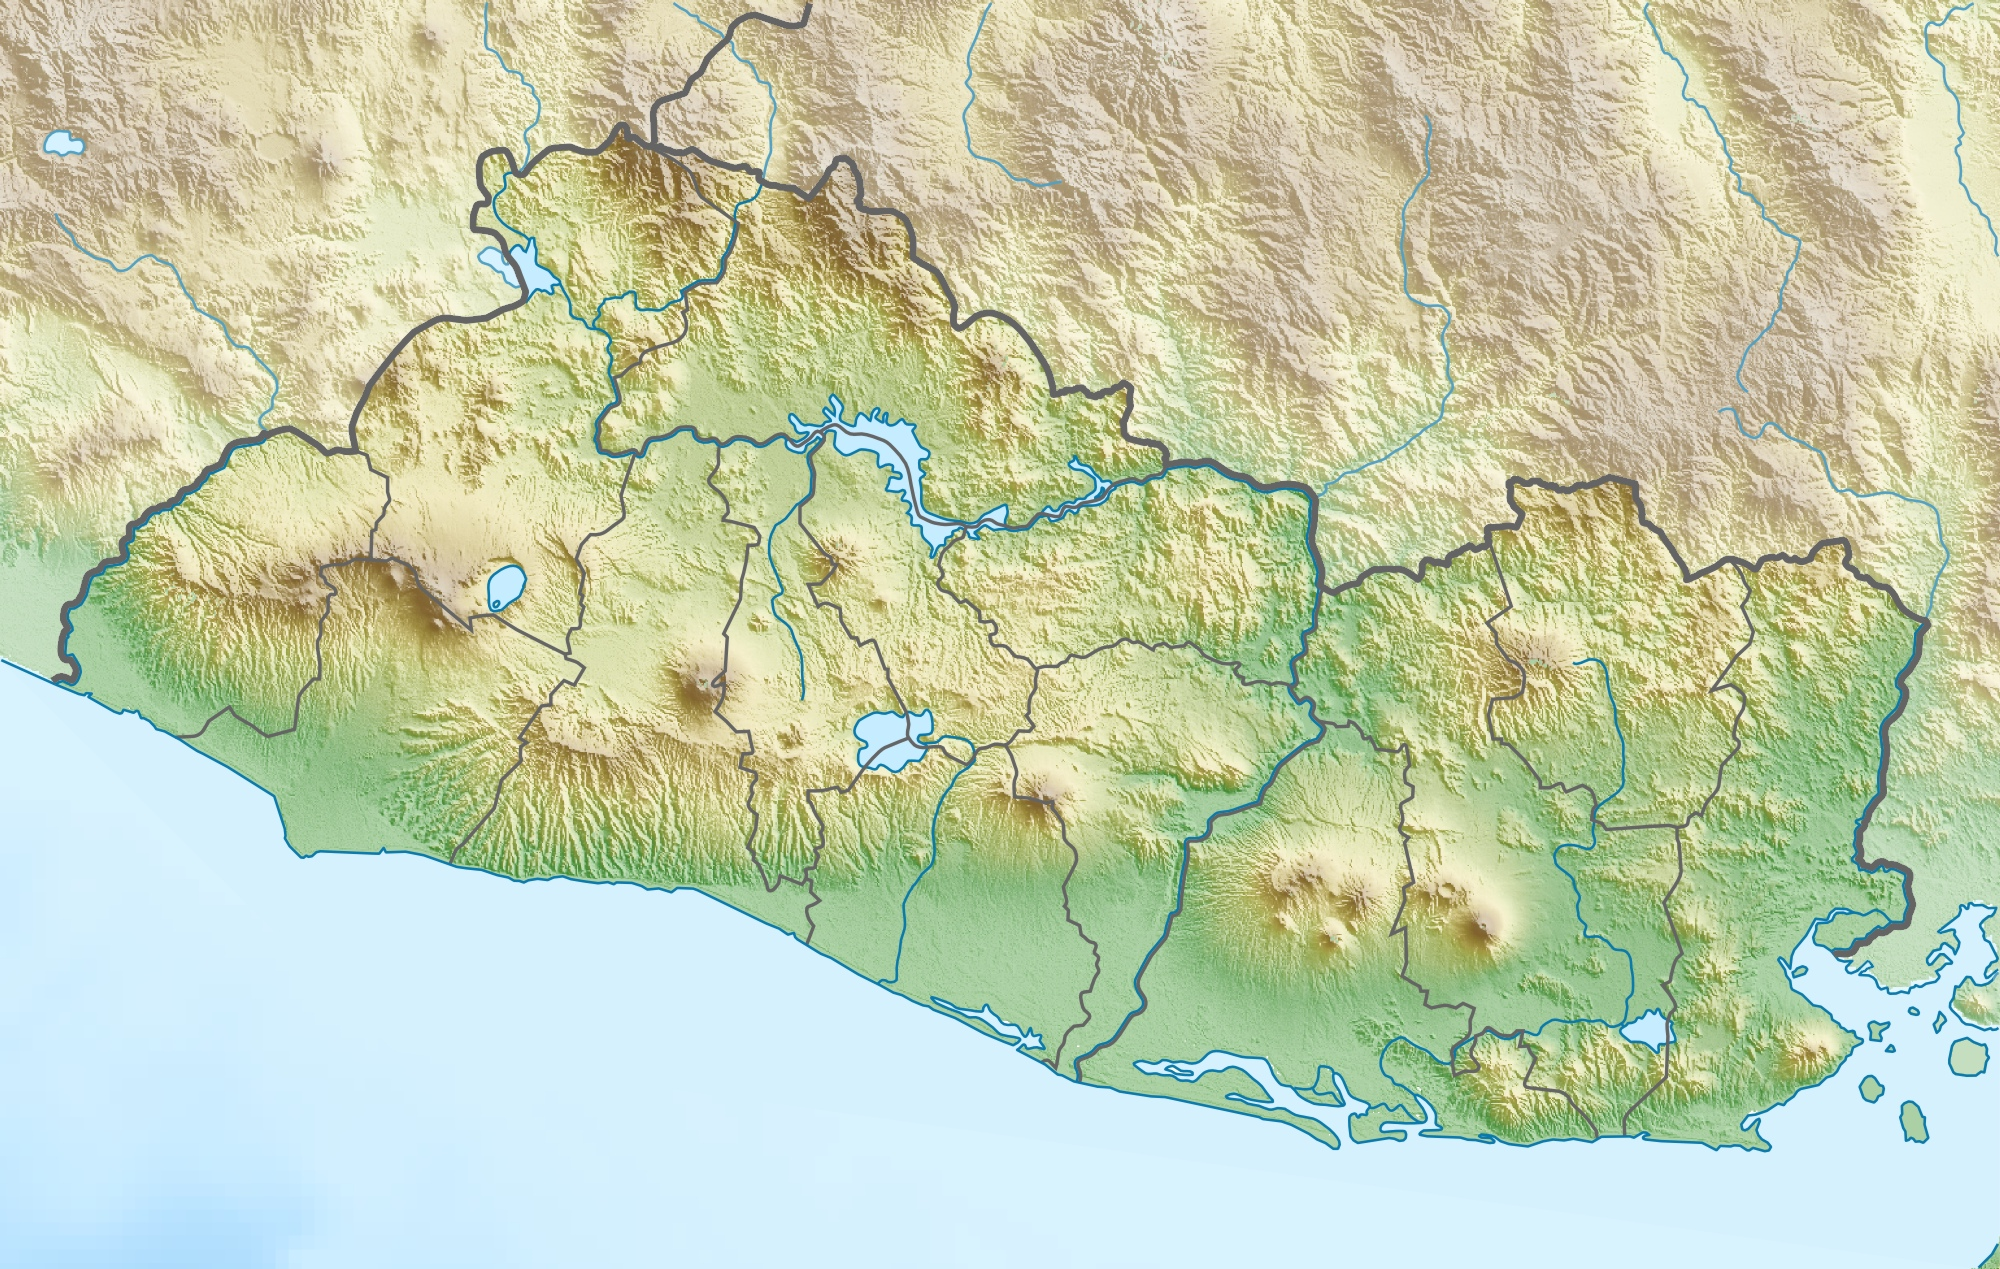 FileEl Salvador relief location mapjpg Wikimedia Commons